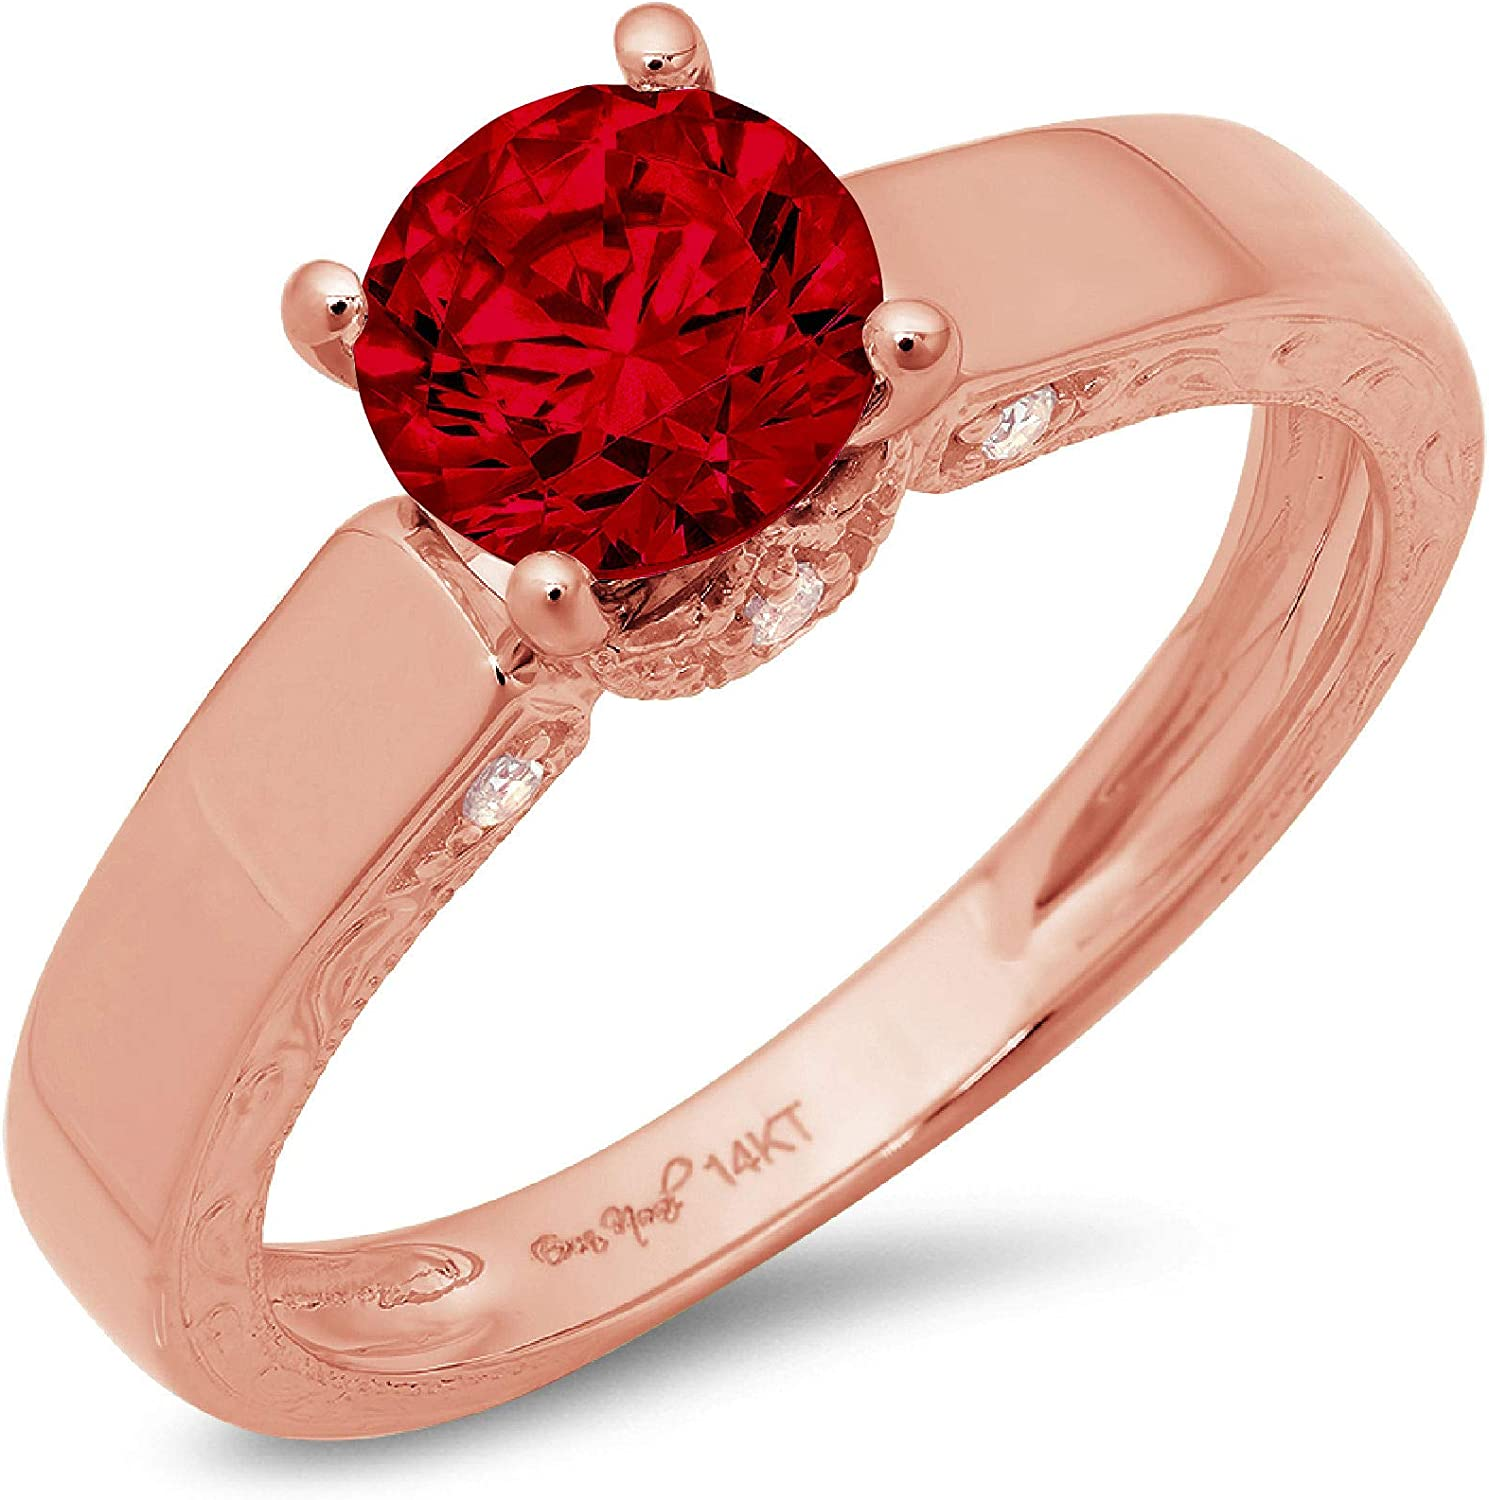 1.70ct Brilliant Round Cut Solitaire Genuine Flawless Natural Red Garnet Gemstone Engagement Promise Anniversary Bridal Wedding Accent Ring Solid 18K Rose Gold